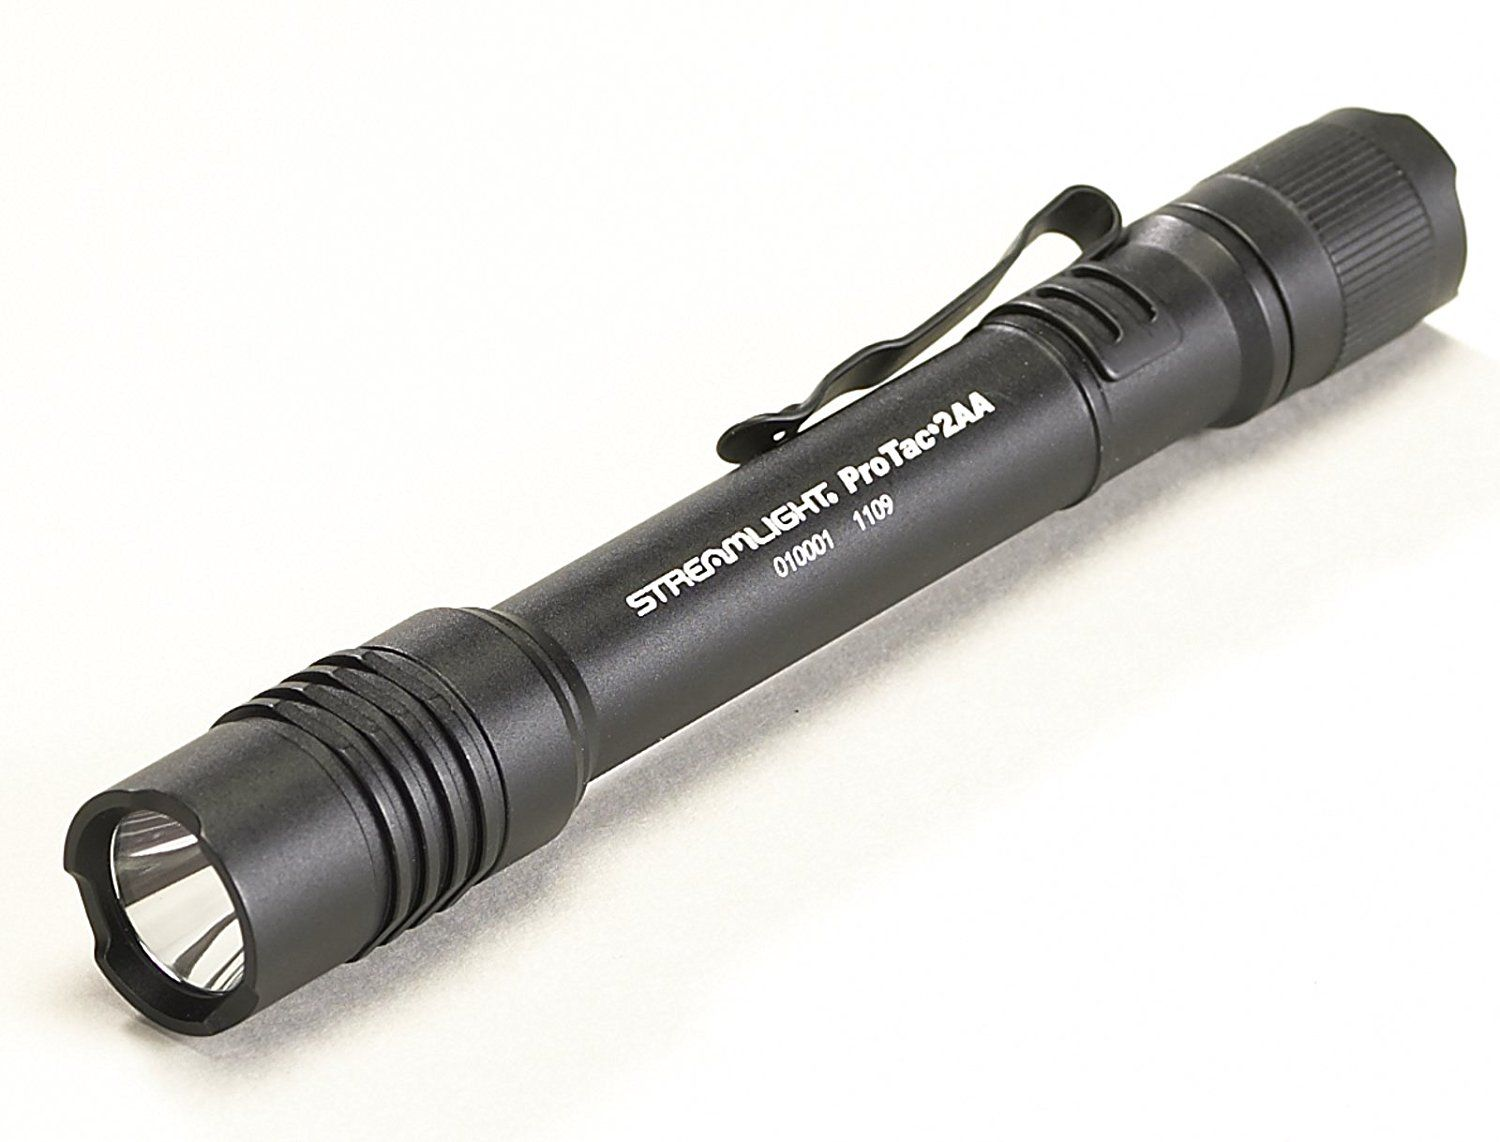 This Streamlight Pro Tac Tactical Flashlight Is One Of My Favourite Compact Flashlights Constructed From Top Flashlight Pocket Flashlights Tactical Flashlight